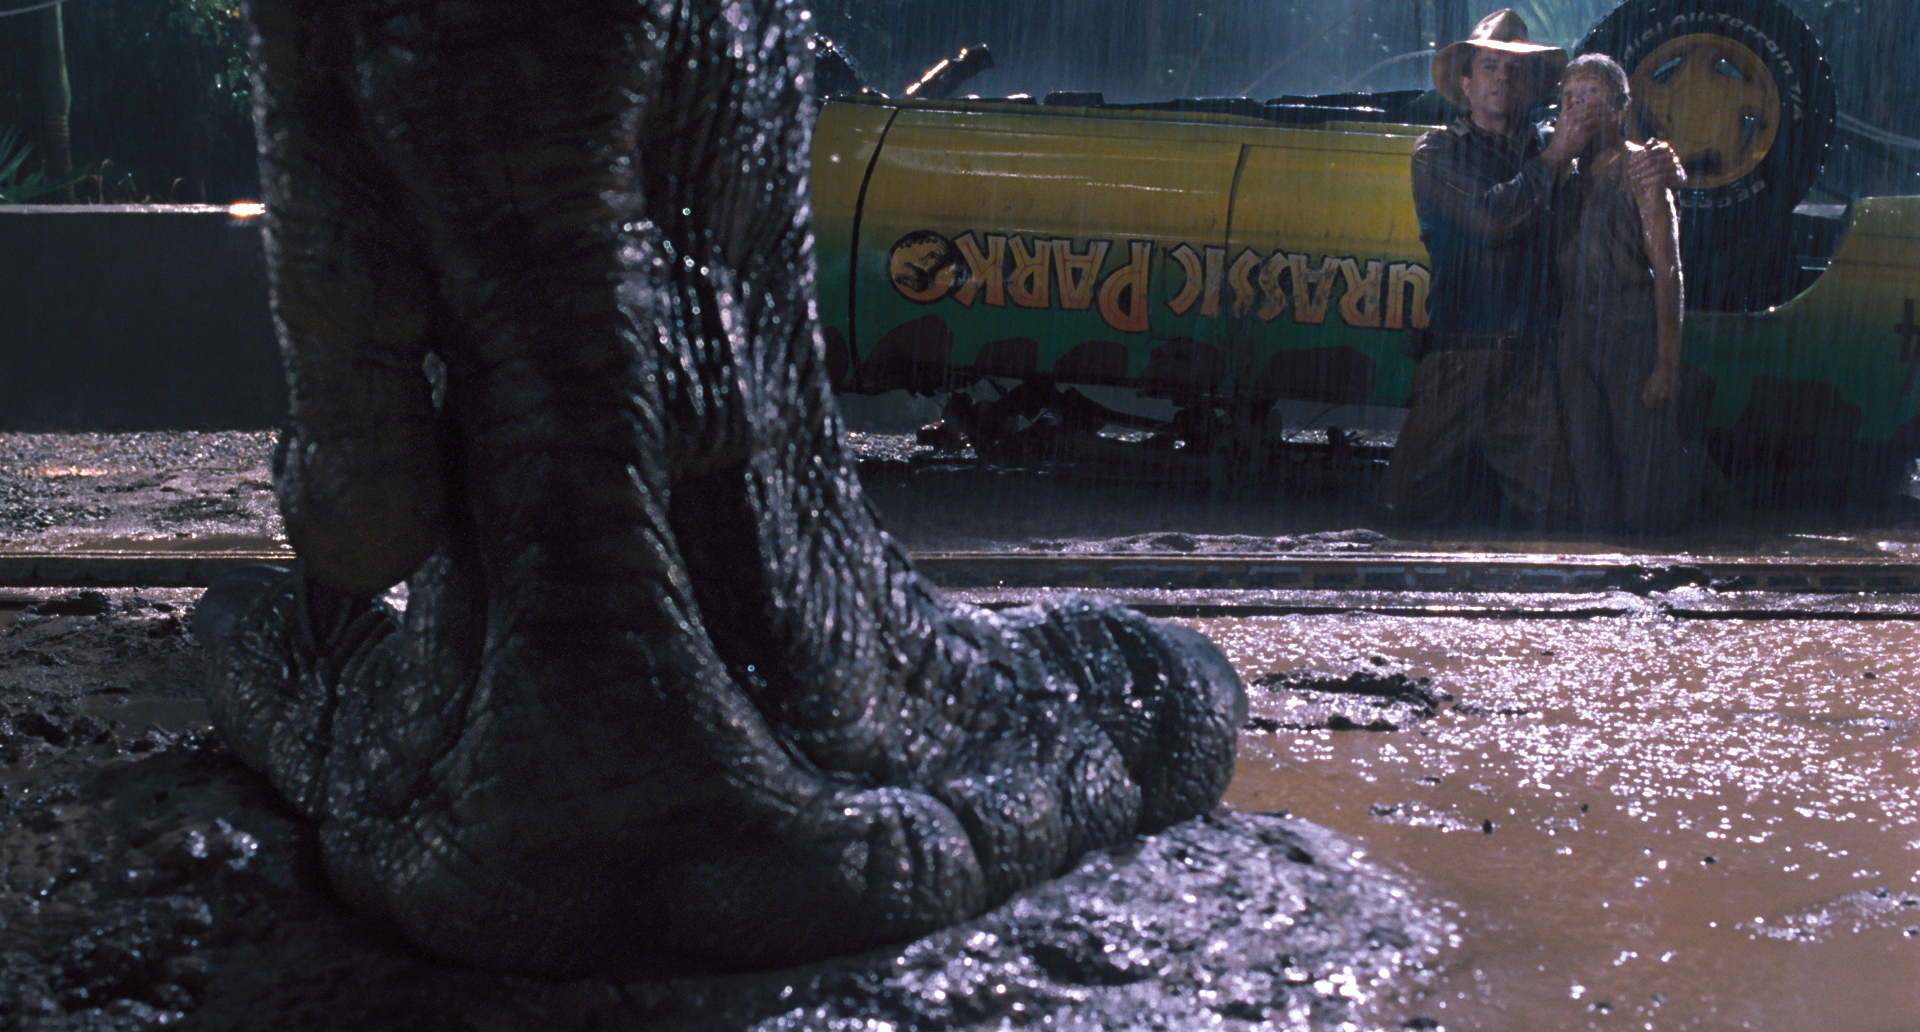 jurassic park critical essays Jurassic park essay - critical essays - - jurassic park essay 30,000+ study guides jurassic park homework help questions what is the moral in the book jurassic park.